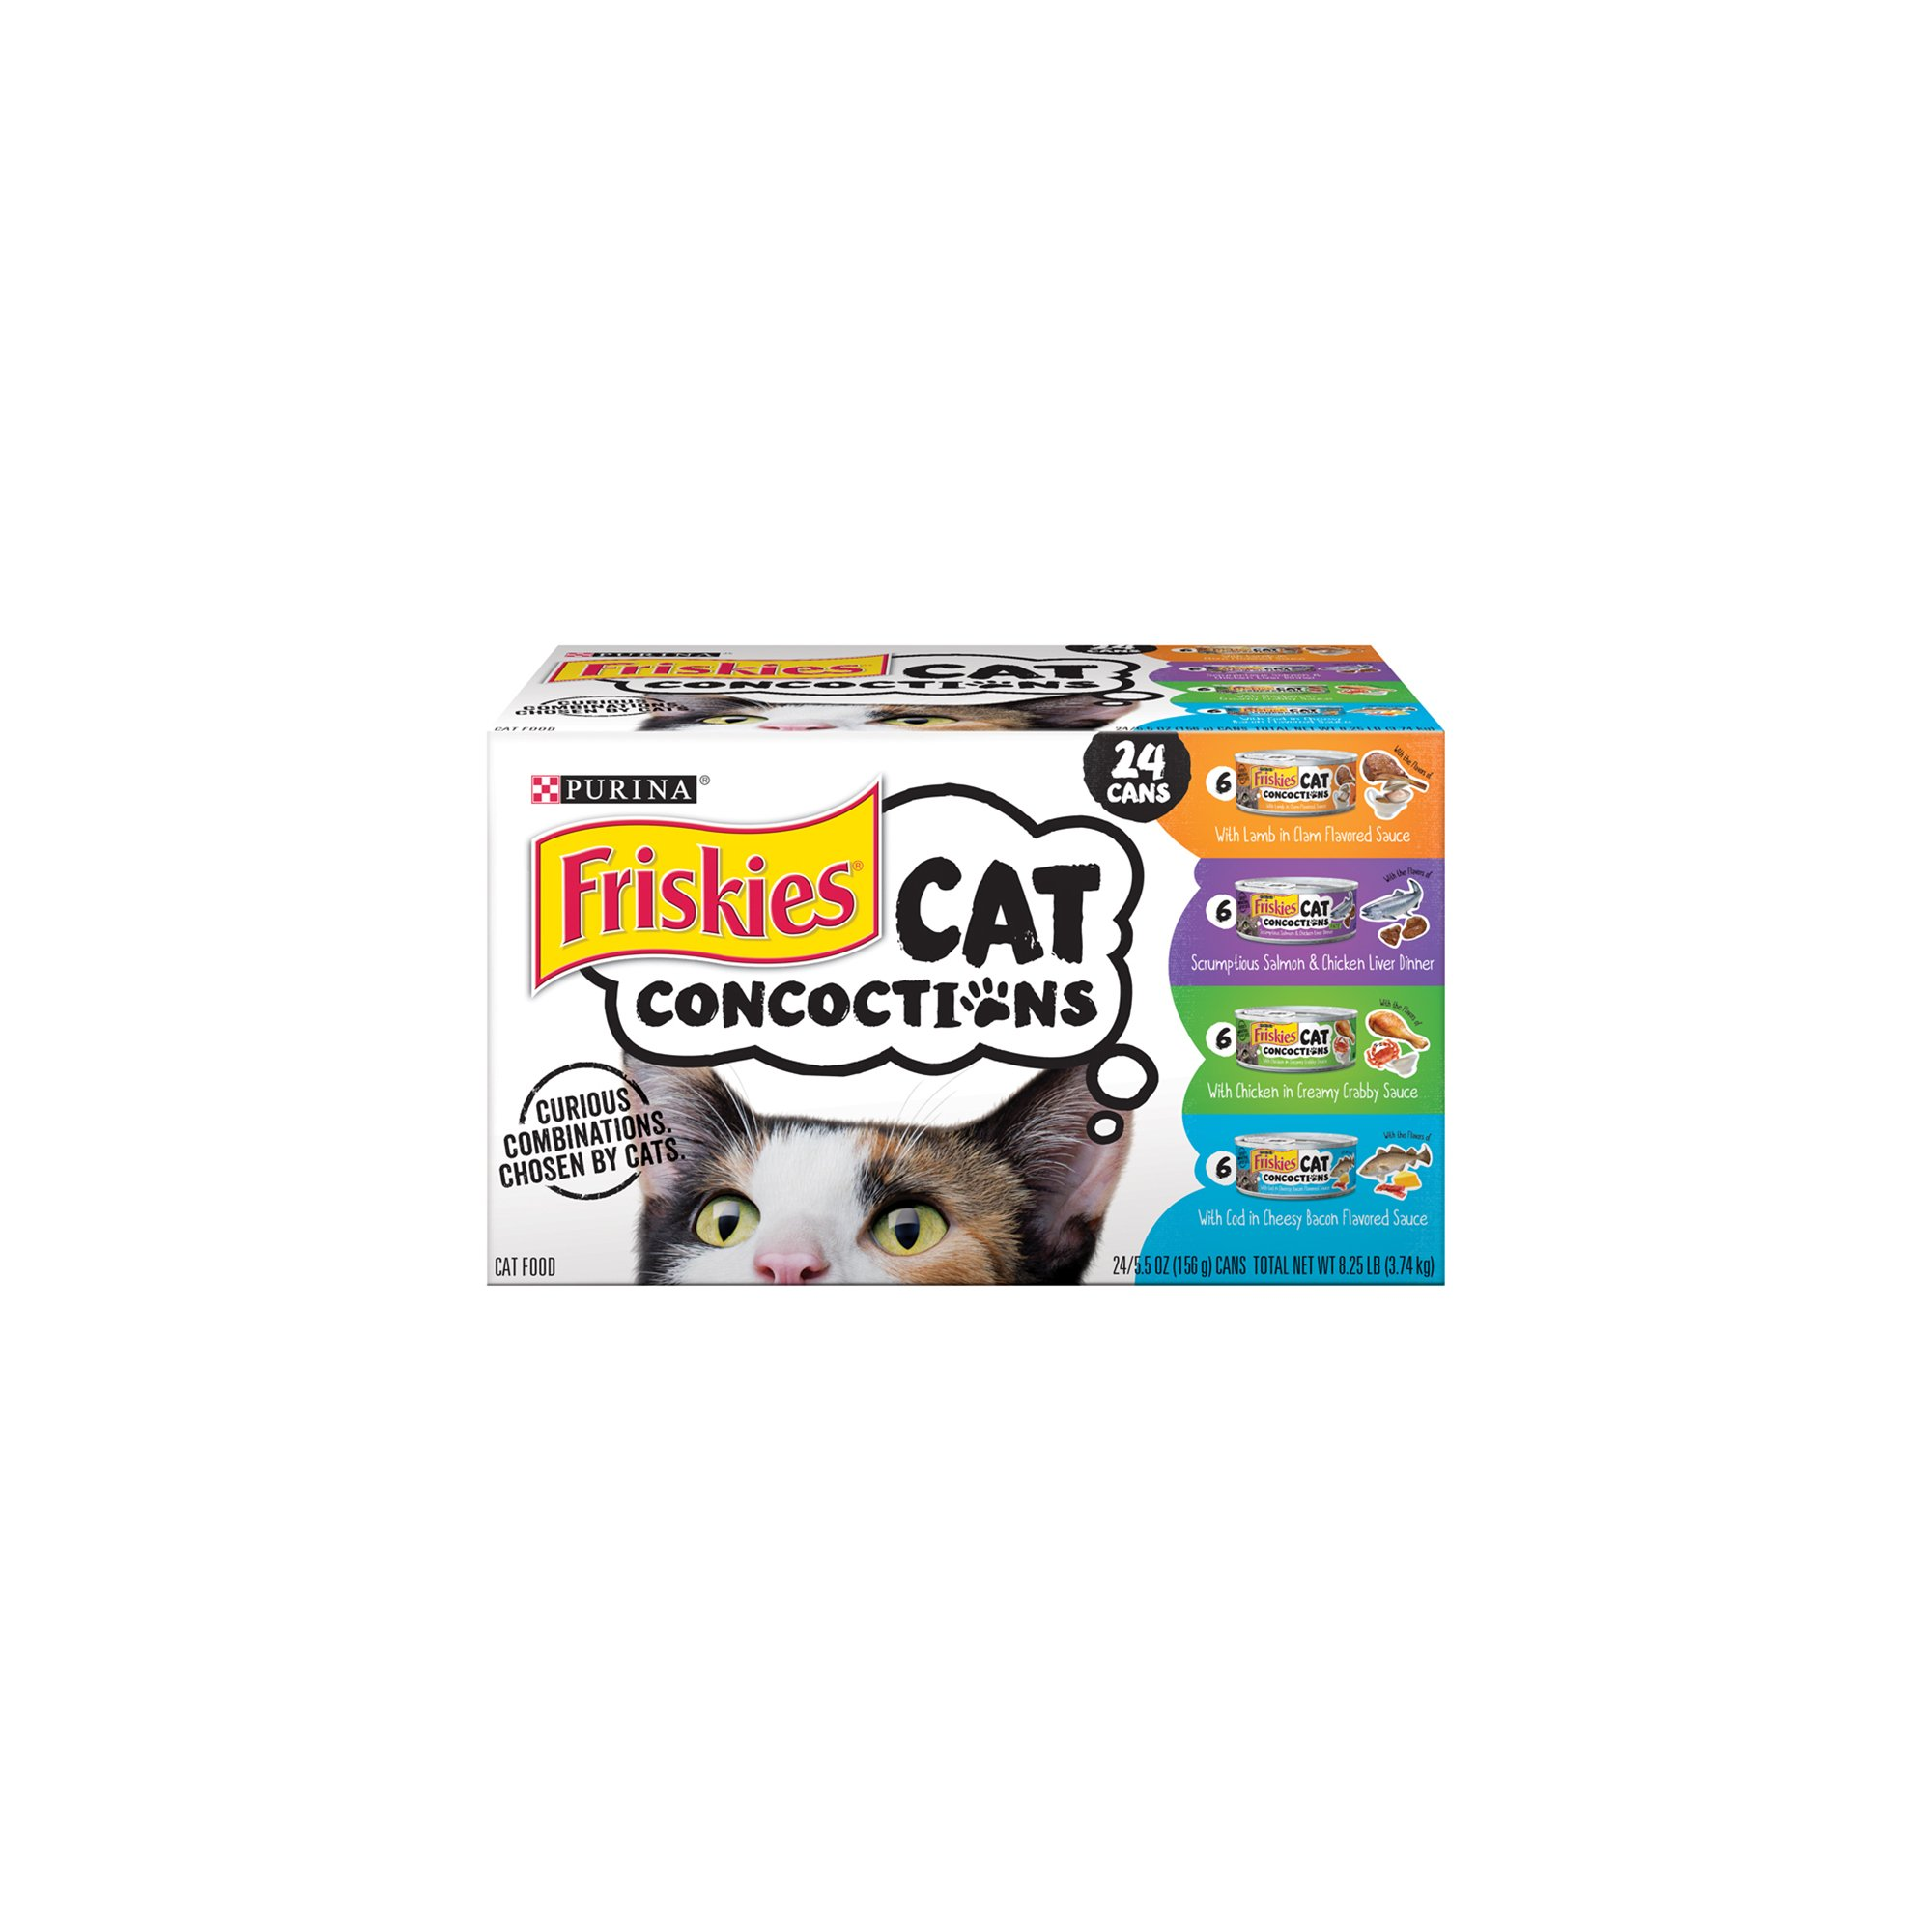 Purina Friskies Cat Concoctions Variety Pack Cat Food - (24) 8.25 lb. Box